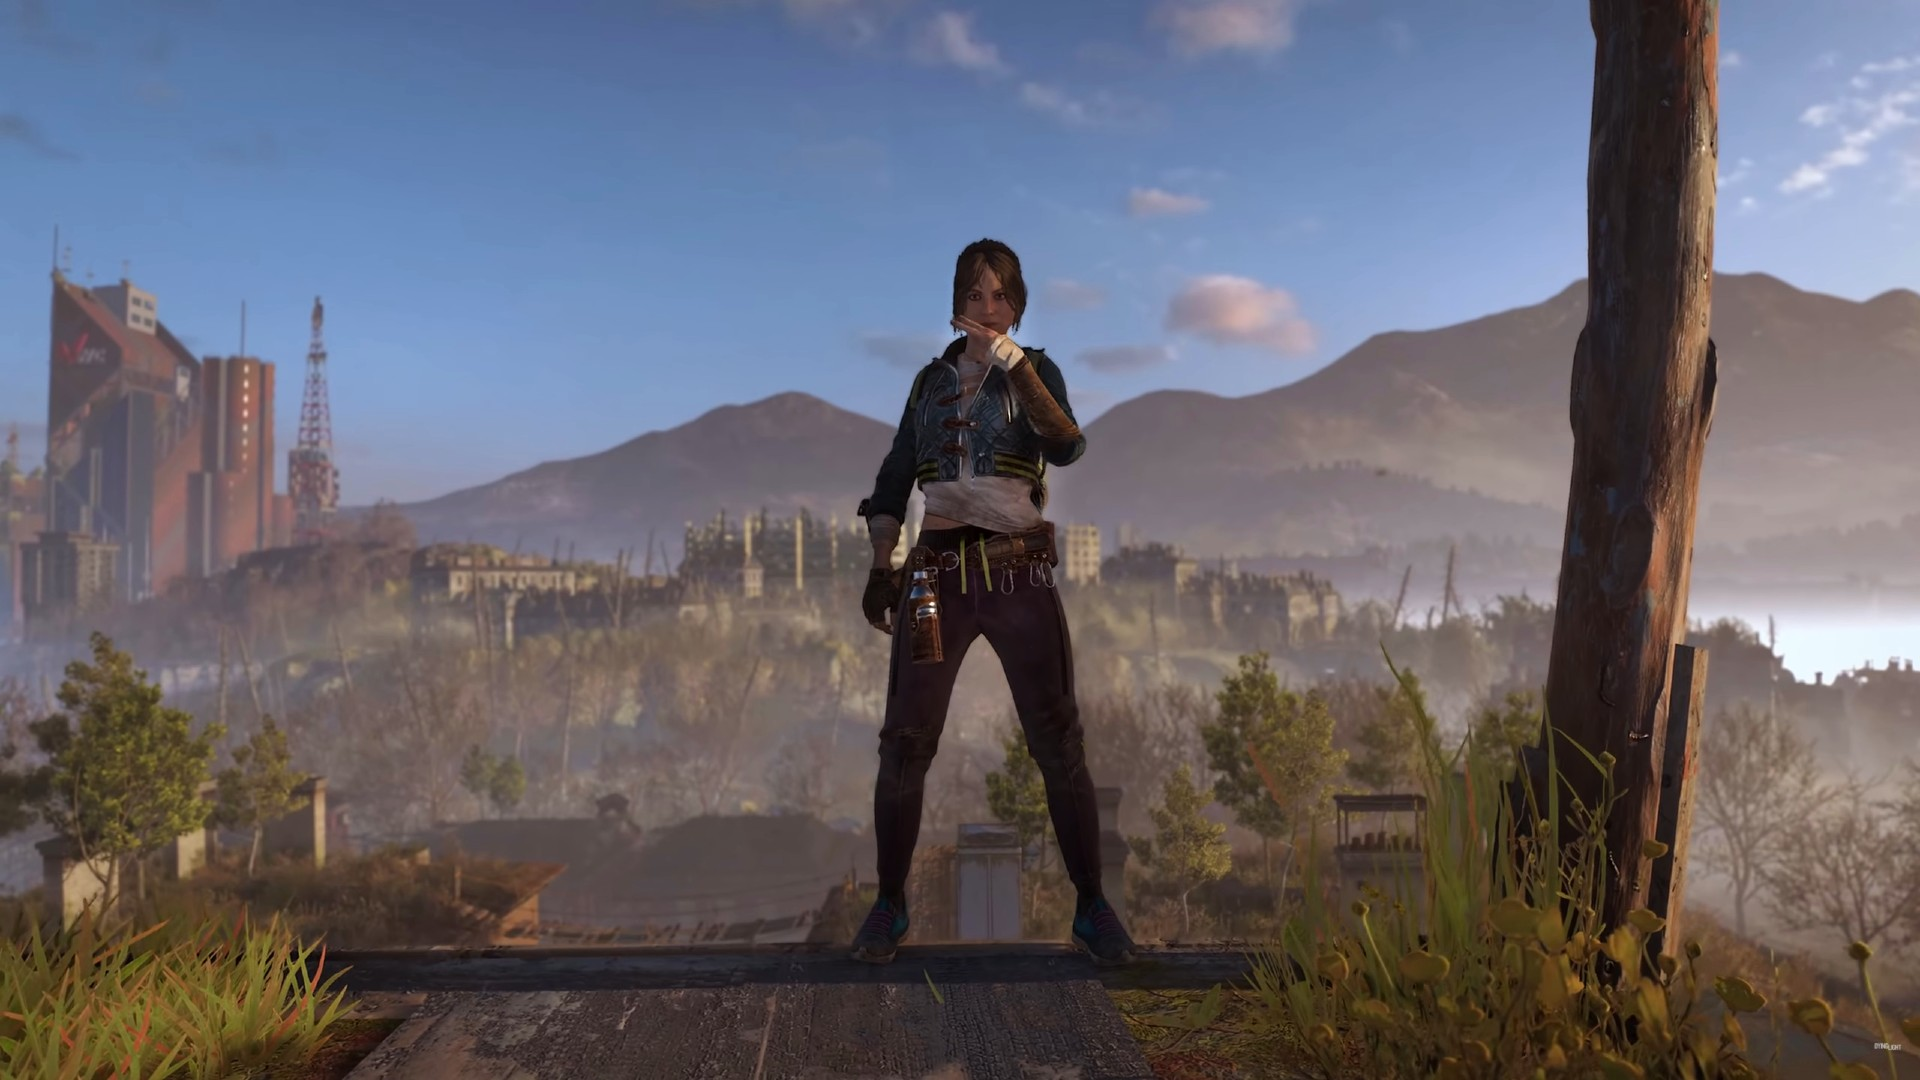 Dying Light 2: Stay Human's new trailer shows a dangerous, dense world